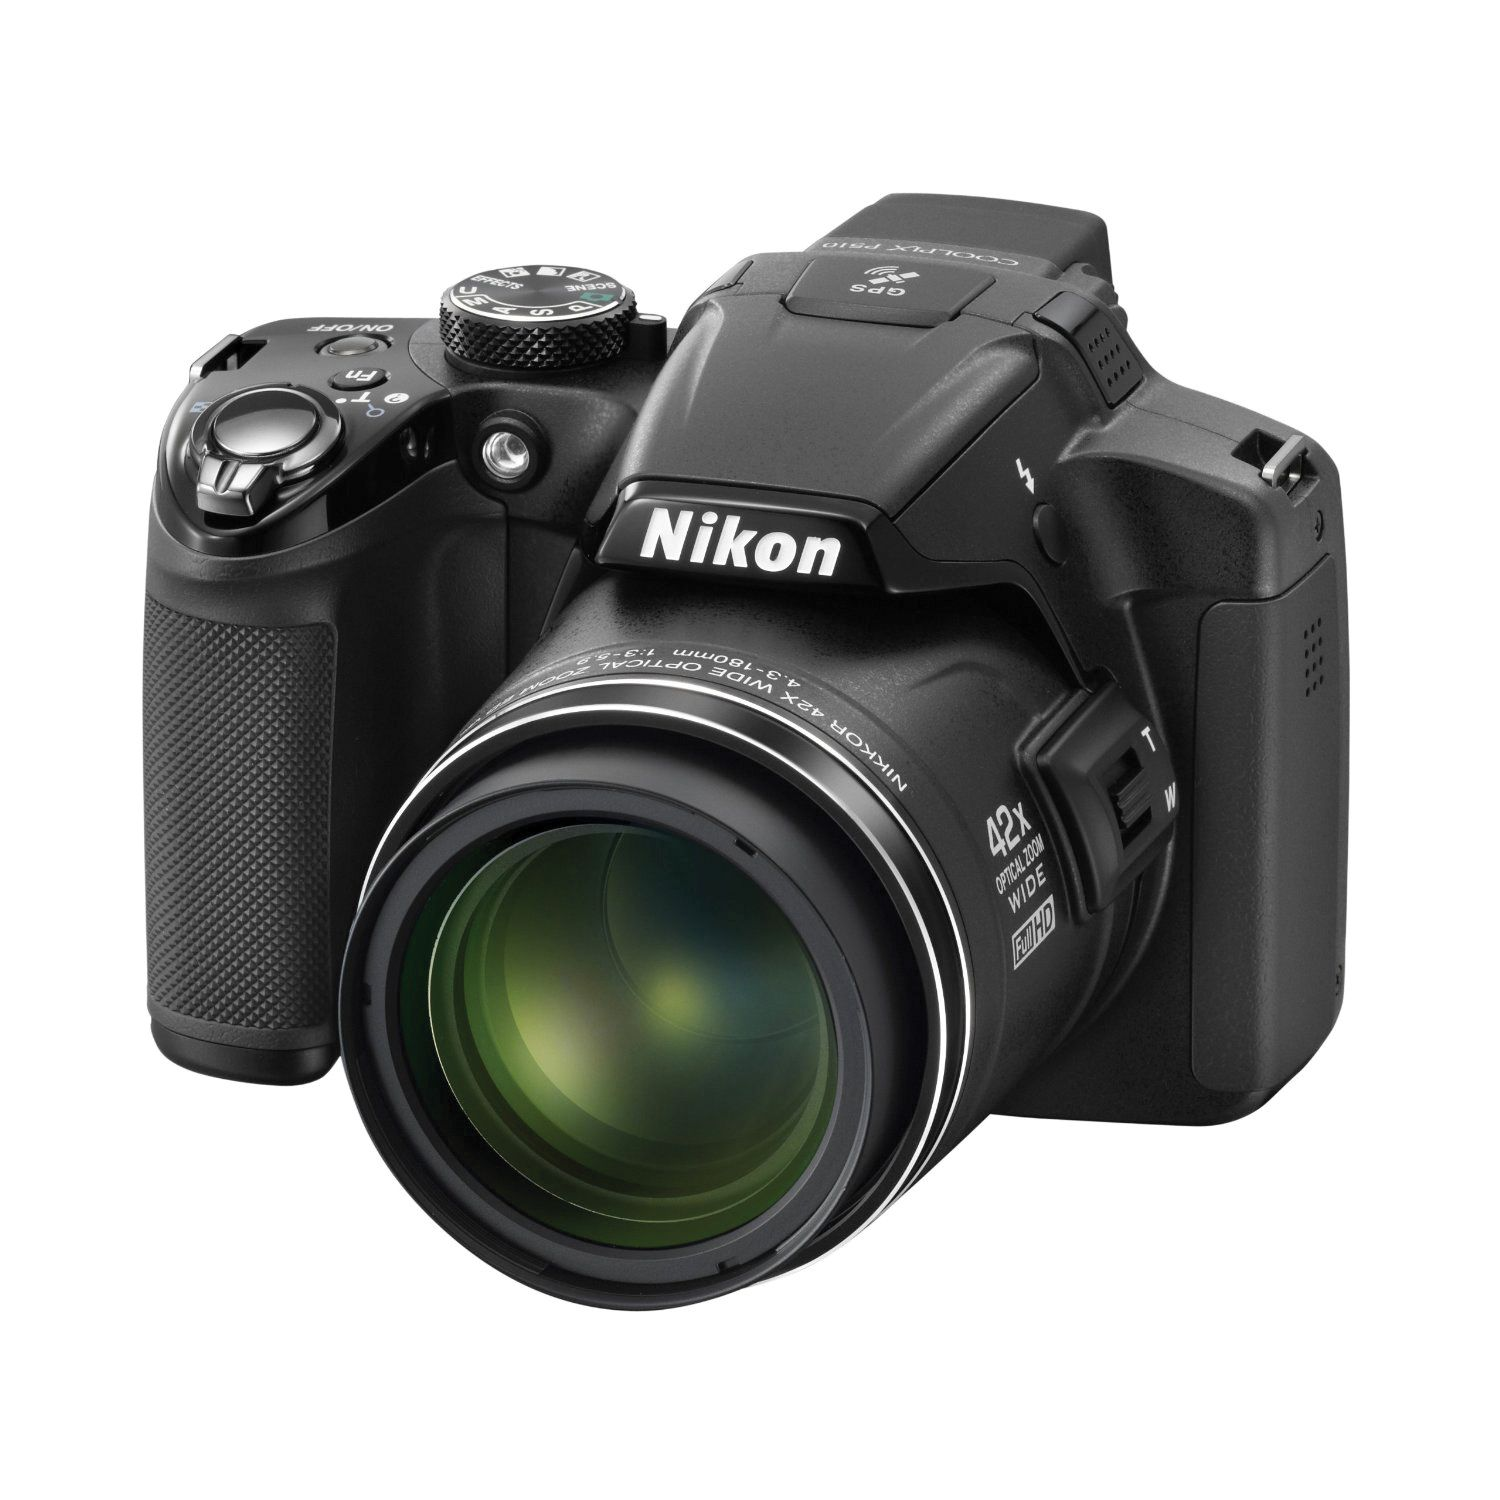 "Nikon Coolpix P510 16.1 Megapixels Digital  Camera, 42x Optical Zoom, 3.0"" LCD Display, Full  HD Movie with Stereo Sound, Built-in GPS, $396.95"